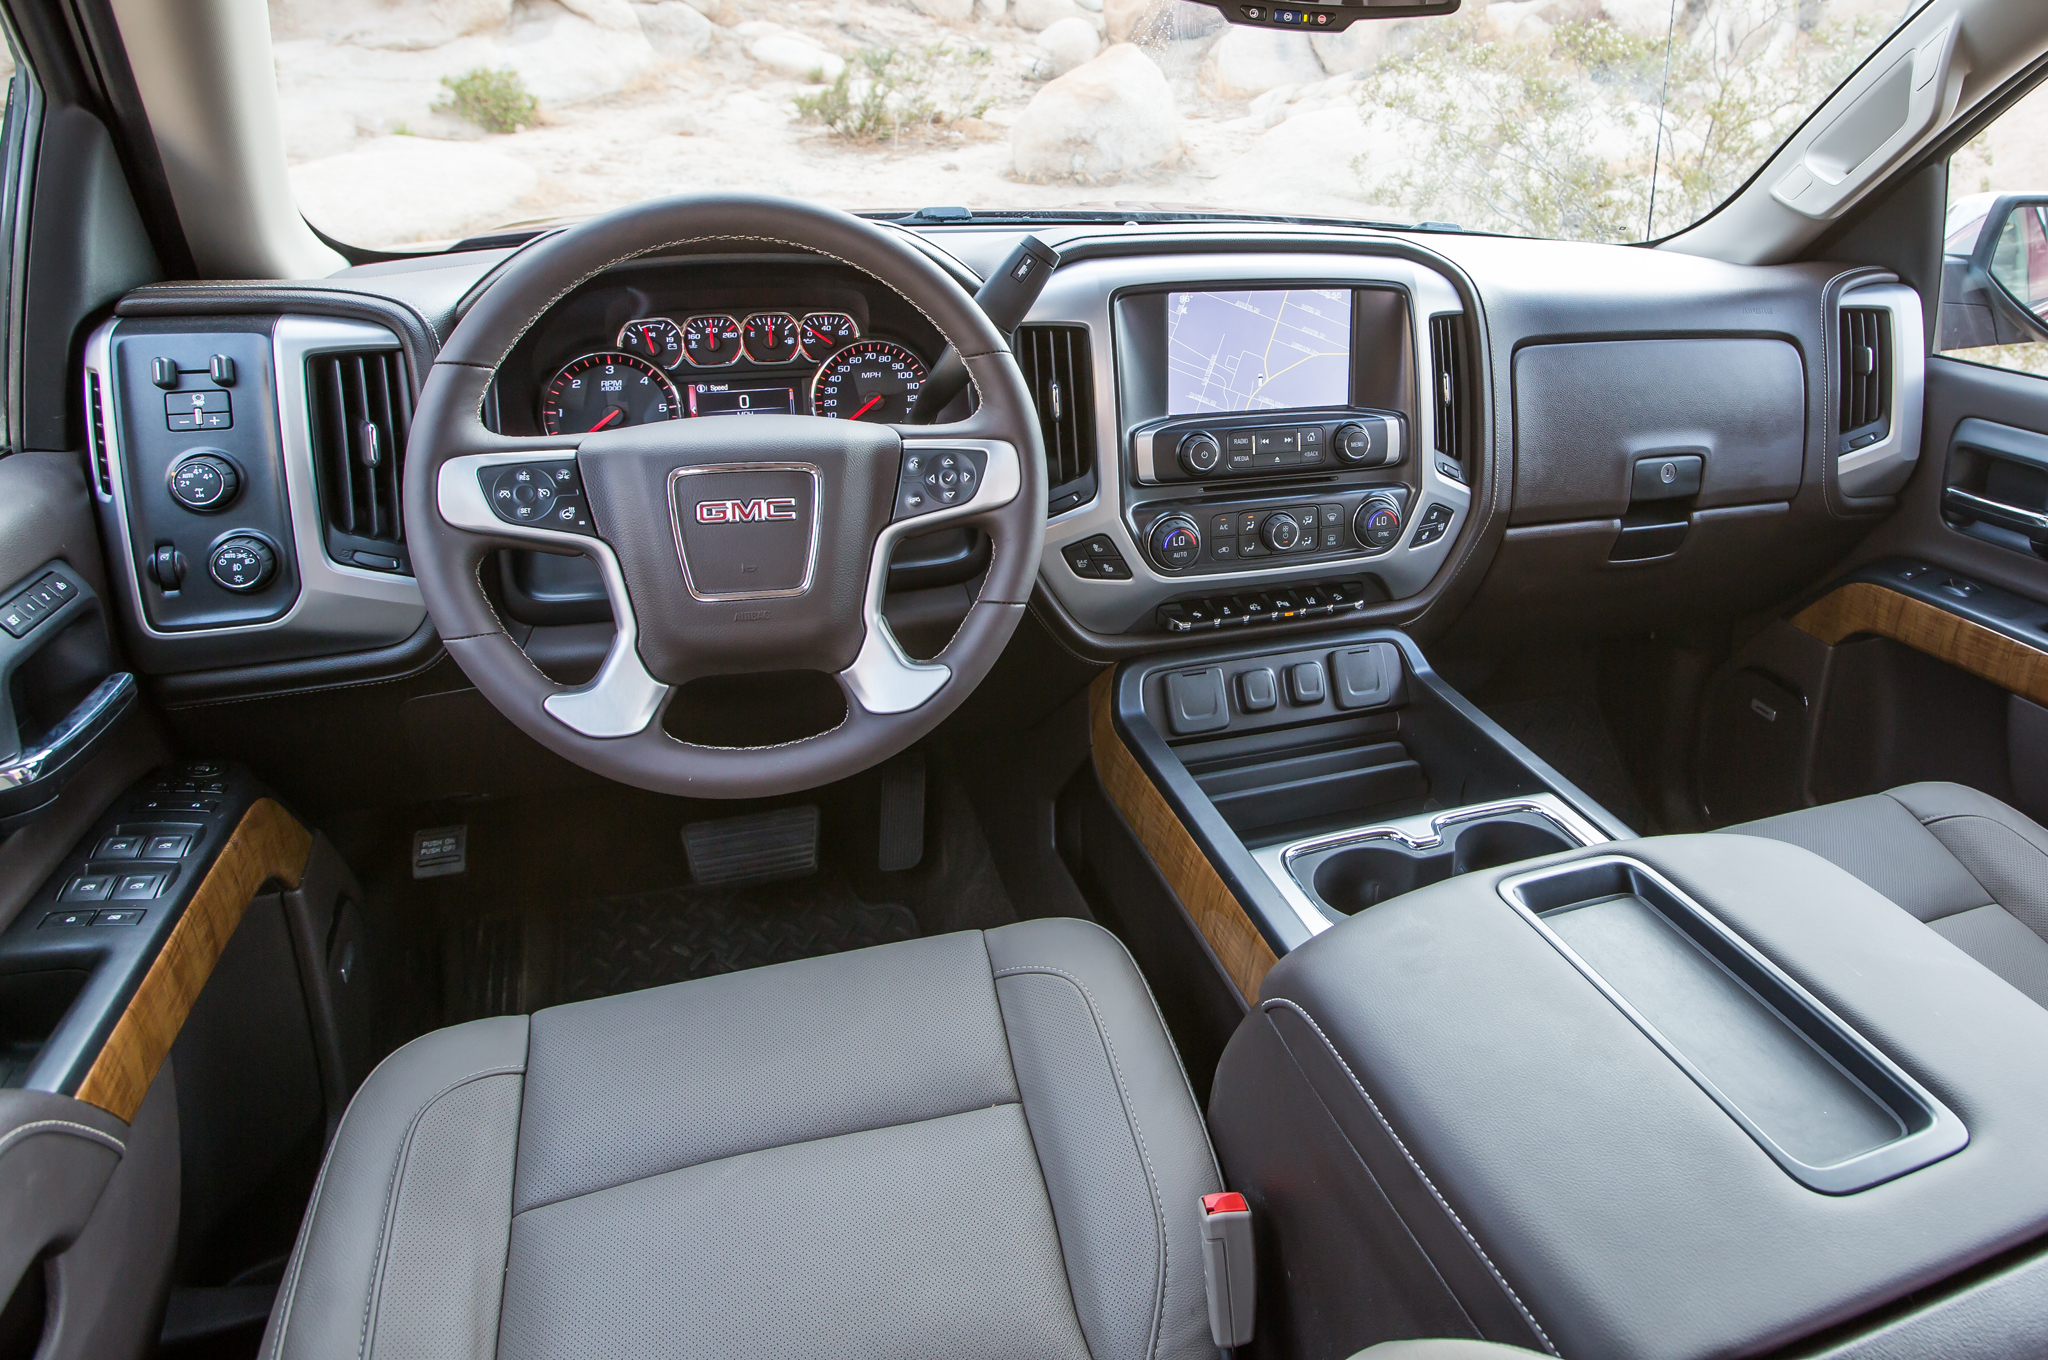 2014 GMC Sierra Pics, Vehicles Collection